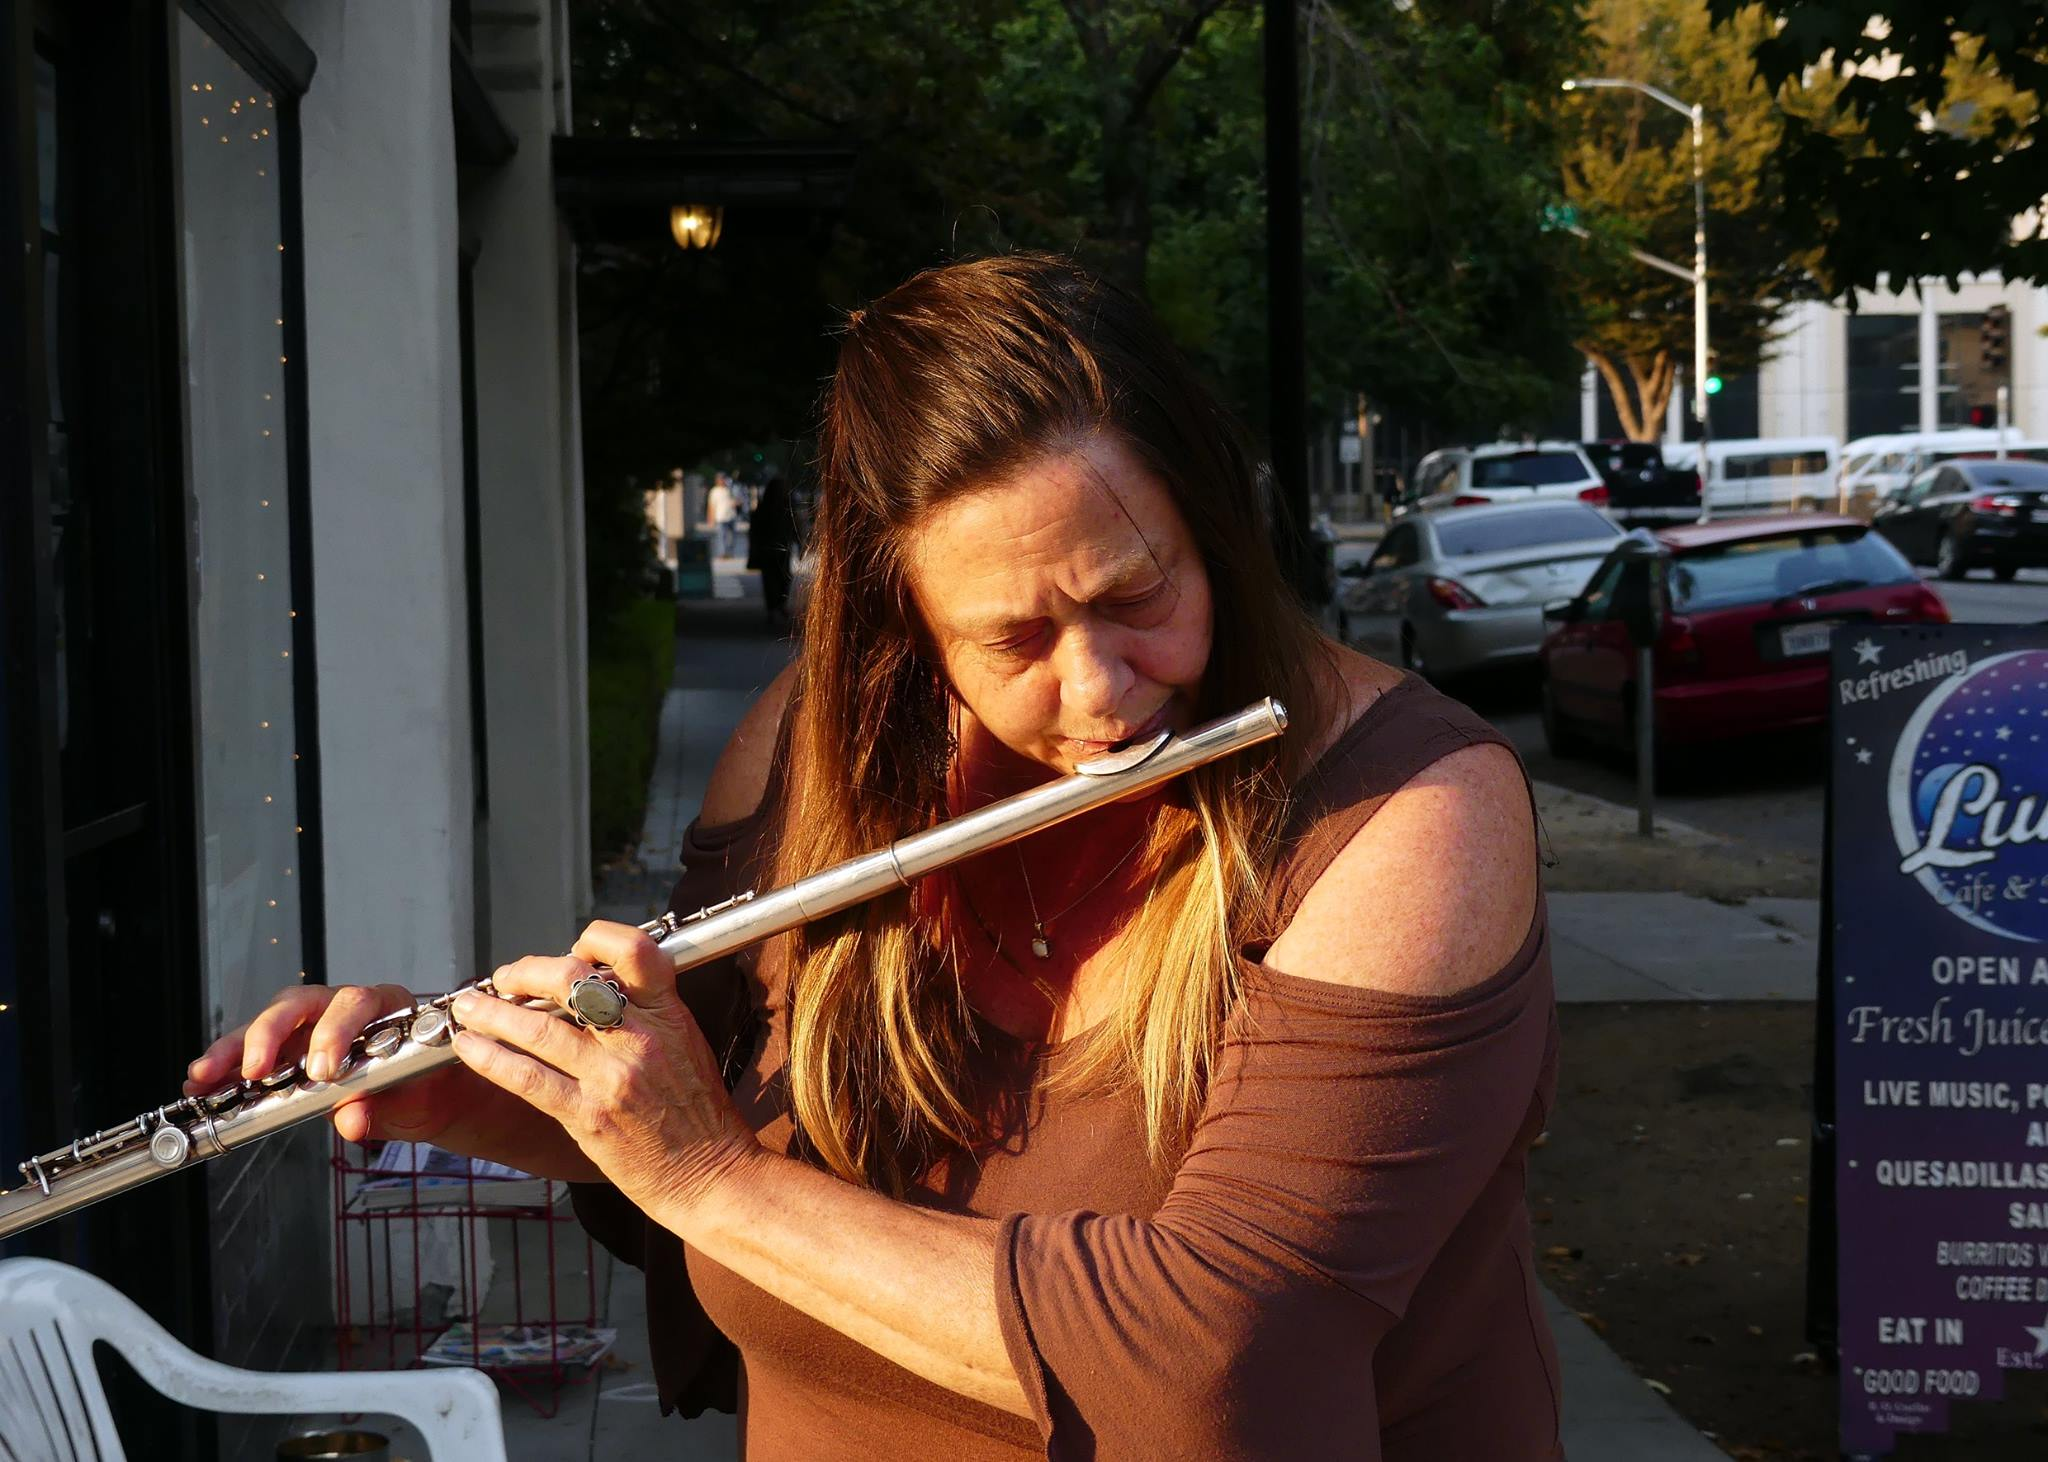 9:35 am: Multi-disciplinary artist and Musician Michelle Hardy performs on the Flute